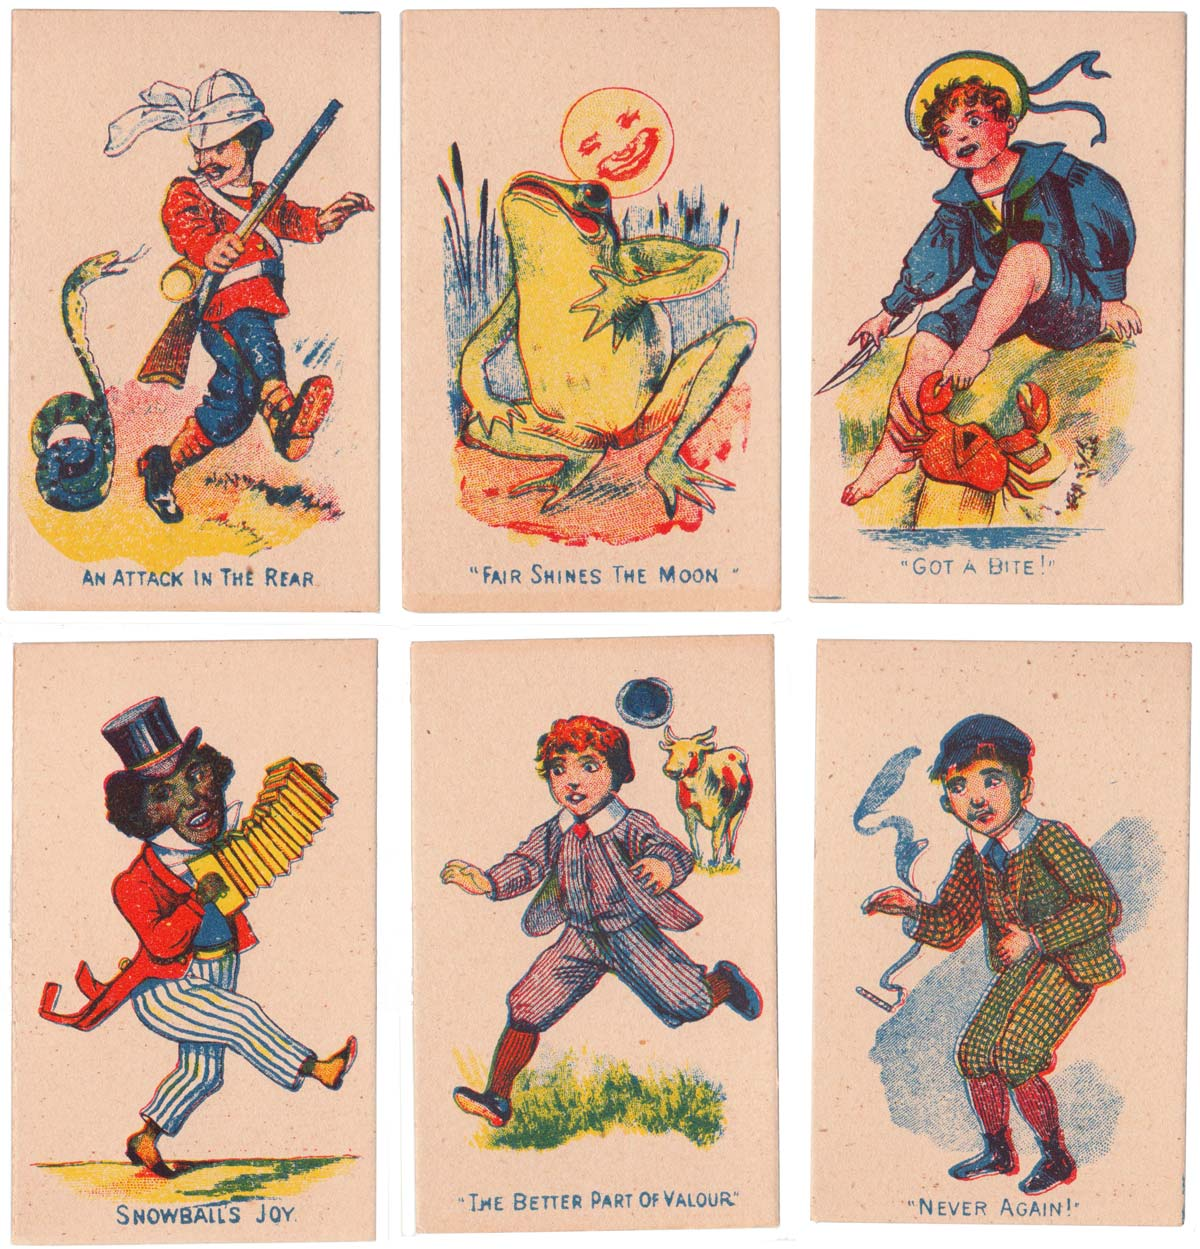 Snap card game published in UK by Globe (Oppenheimer und Sulzbacher), late 19th century